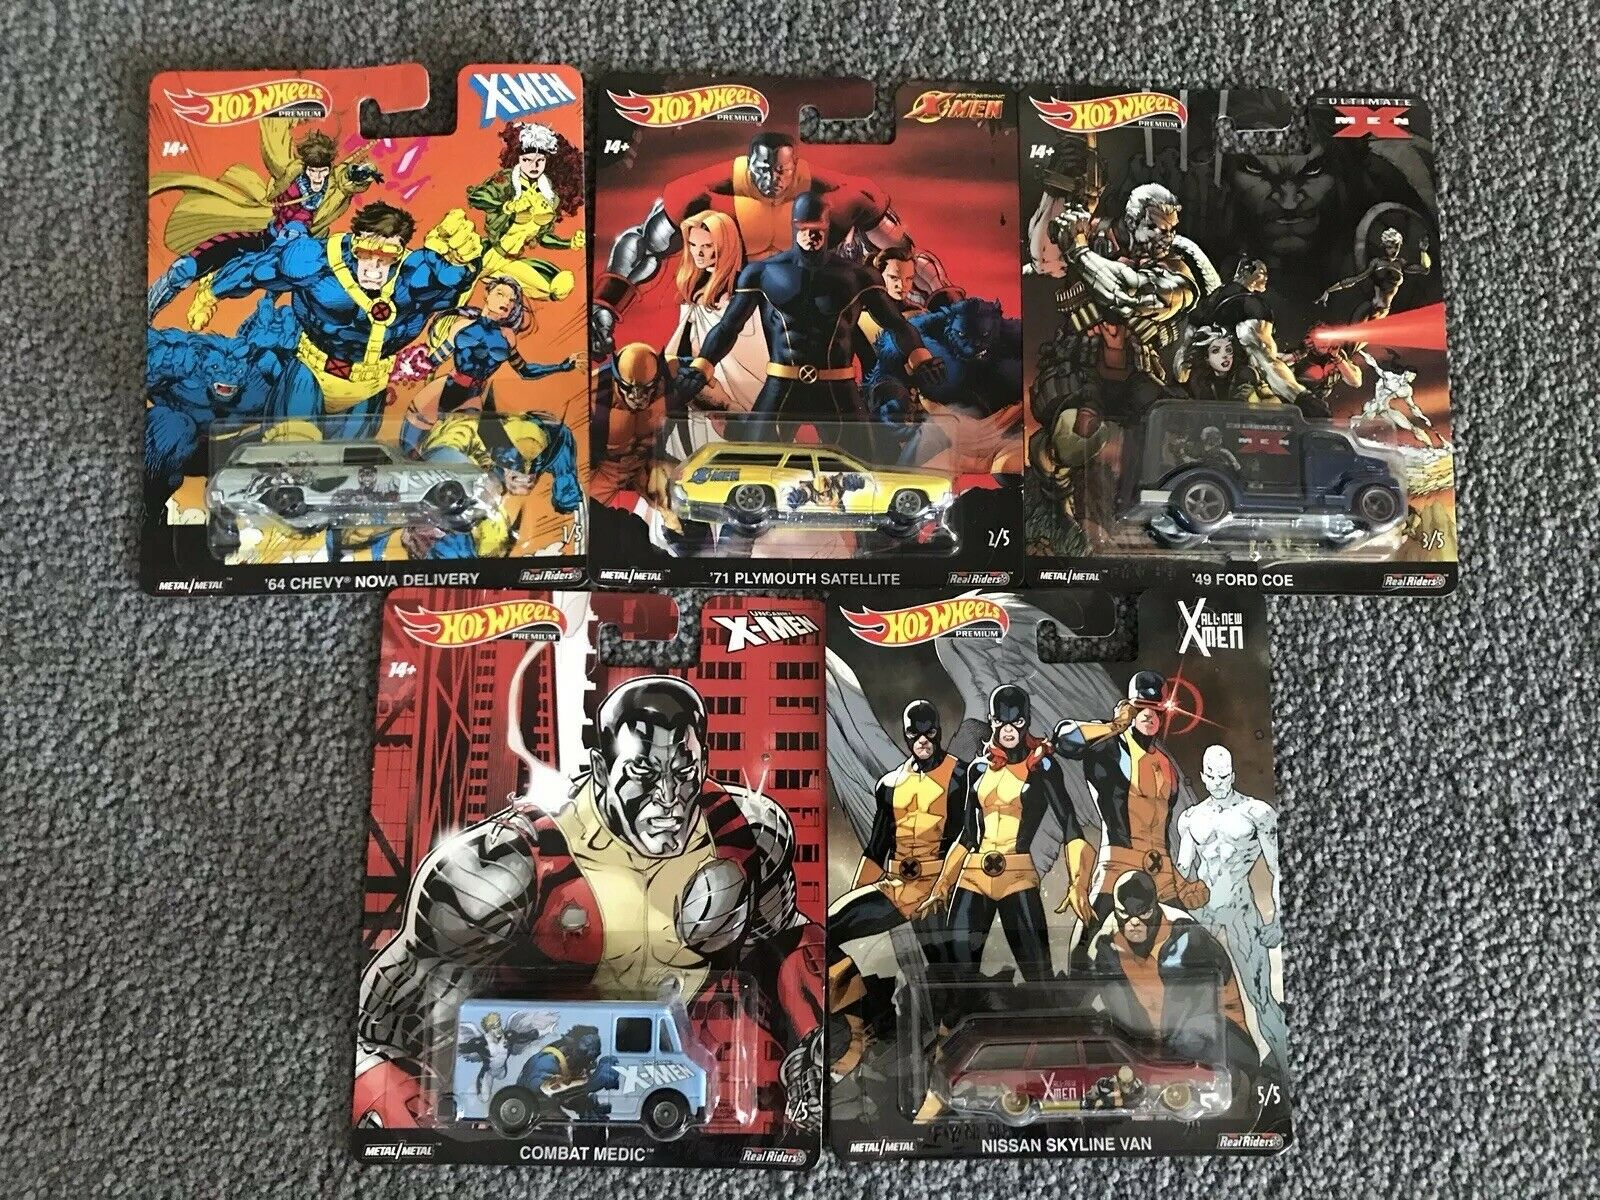 2019 HOT WHEELS MARVEL X-MEN SET OF 5 Skyline Van Chevy Nova Plymouth Ford